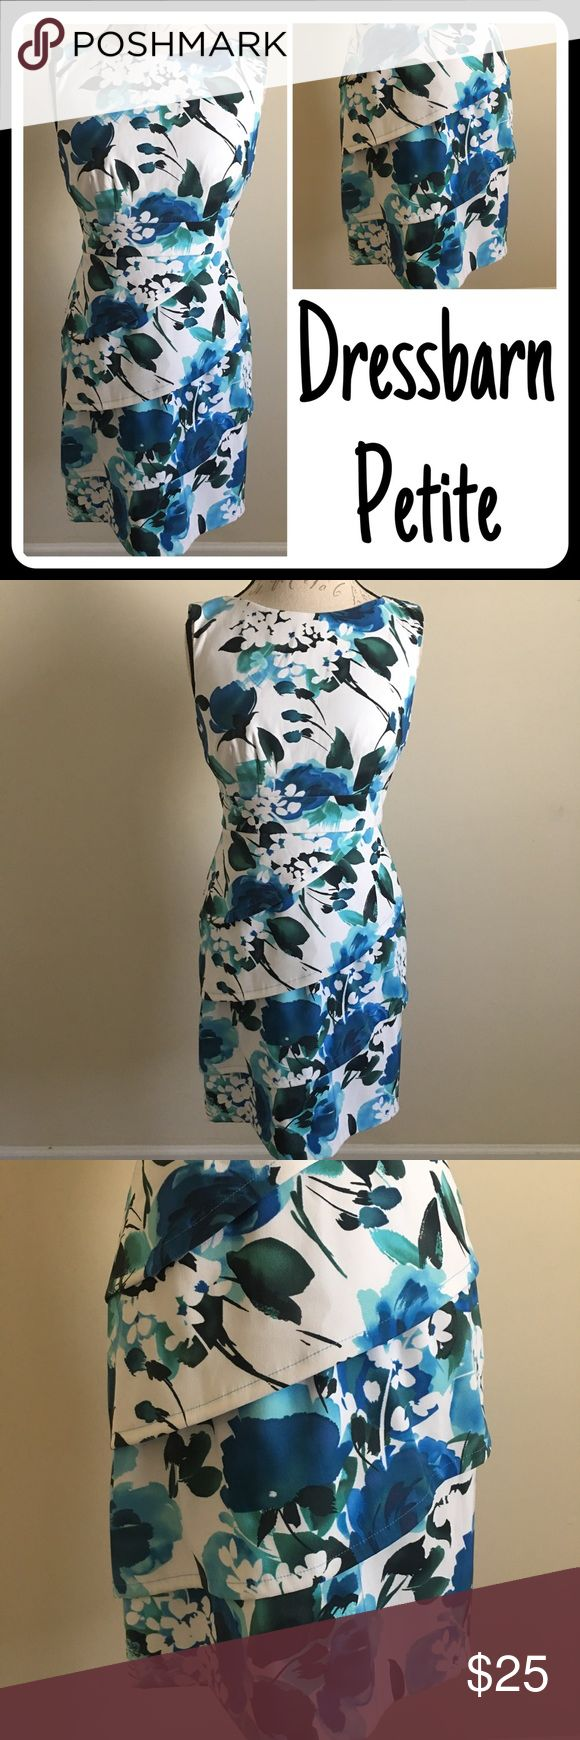 Dress Barn Blue & White Floral Dress Layered Skirt Dressbarn casual or career style dress.  Fitted A-line with a layered skirt.  White base with beautiful blue flower design through out.  Sleeveless dress with classic neckline.  Falls at knee.  Zip and clasp closure in back.  Size women's 4P Petite. Dress Barn Dresses Midi